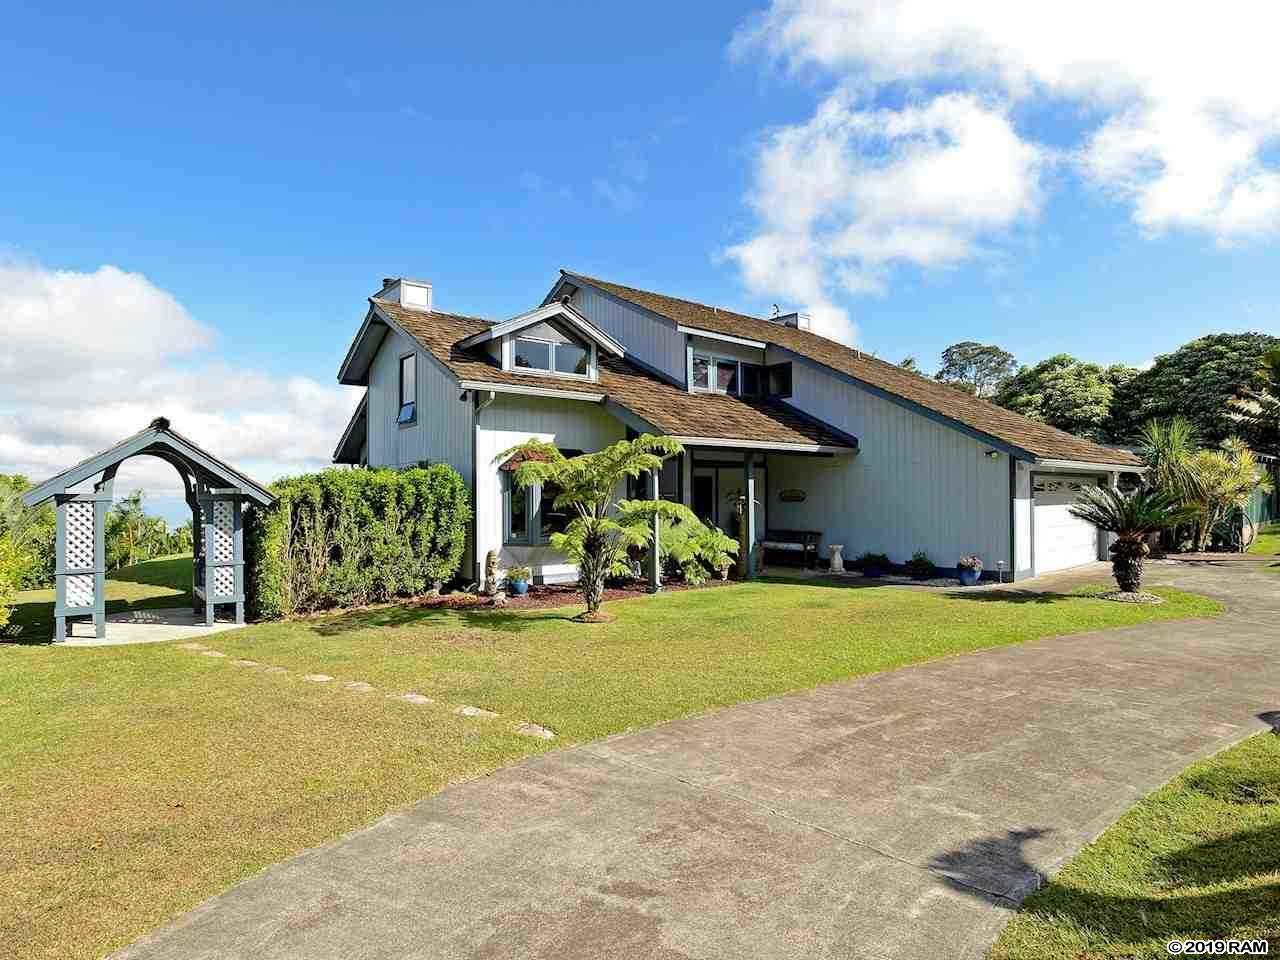 1009 Lower Kimo Dr in Kimo Drive